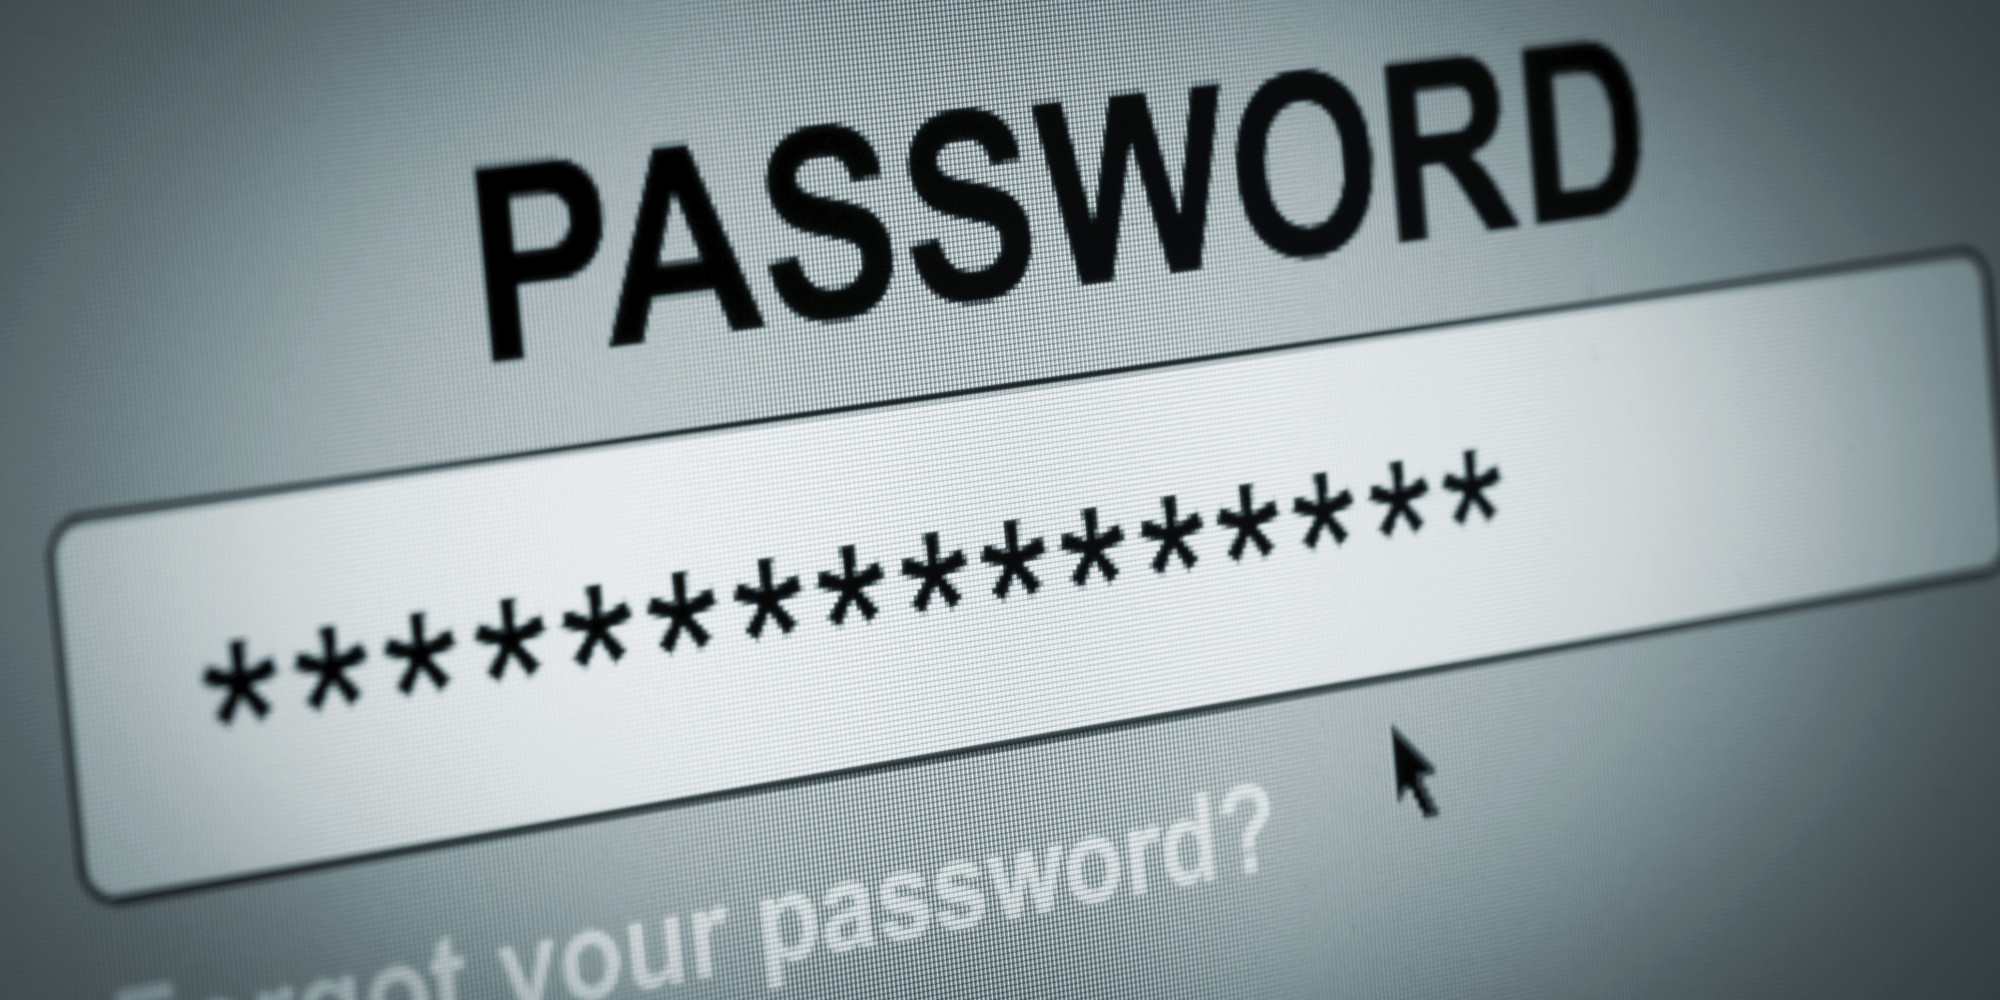 Strong passwords contain letters, numbers and symbols which are hard to guess. Image Credit: HuffPost